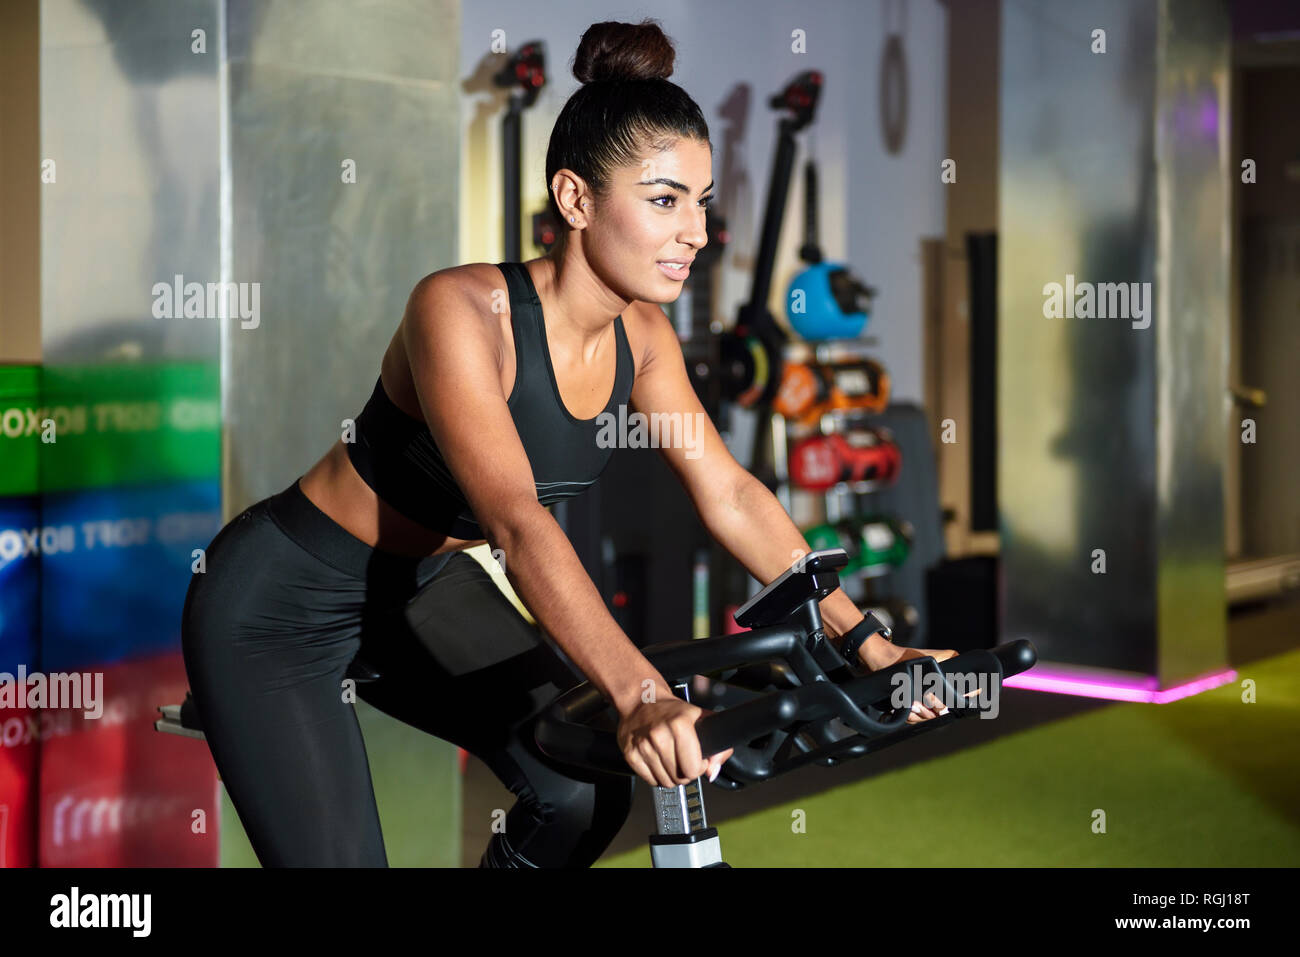 Woman on spinning bike in a gym - Stock Image